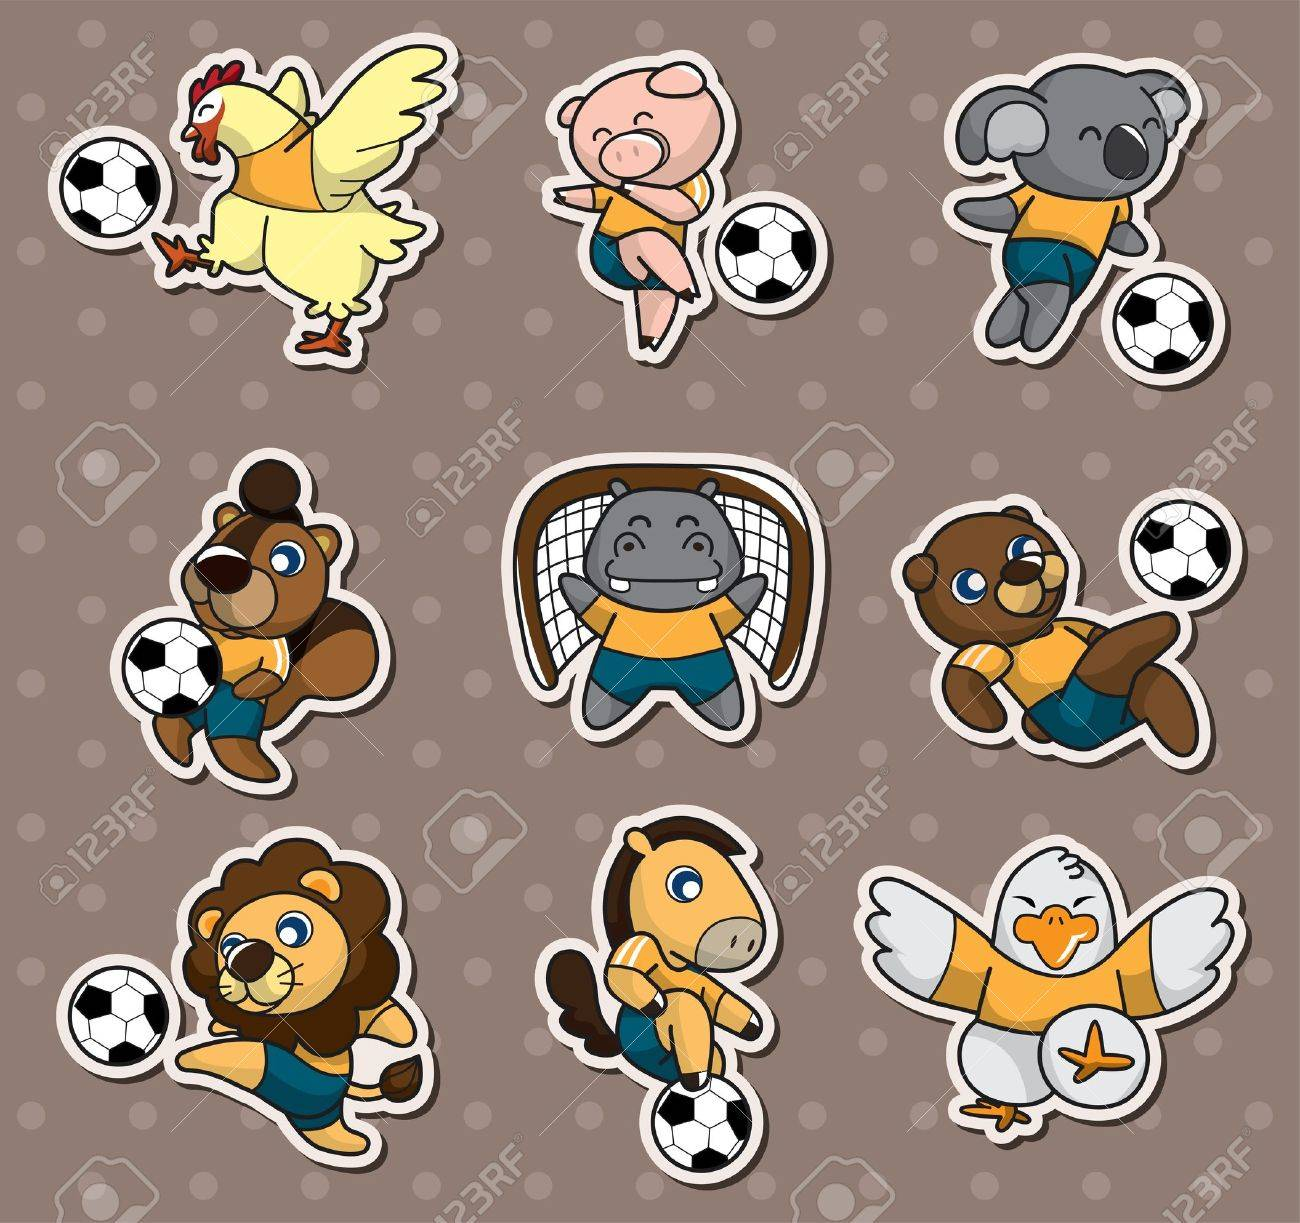 cartoon animal soccer player stickers Stock Vector - 13397721